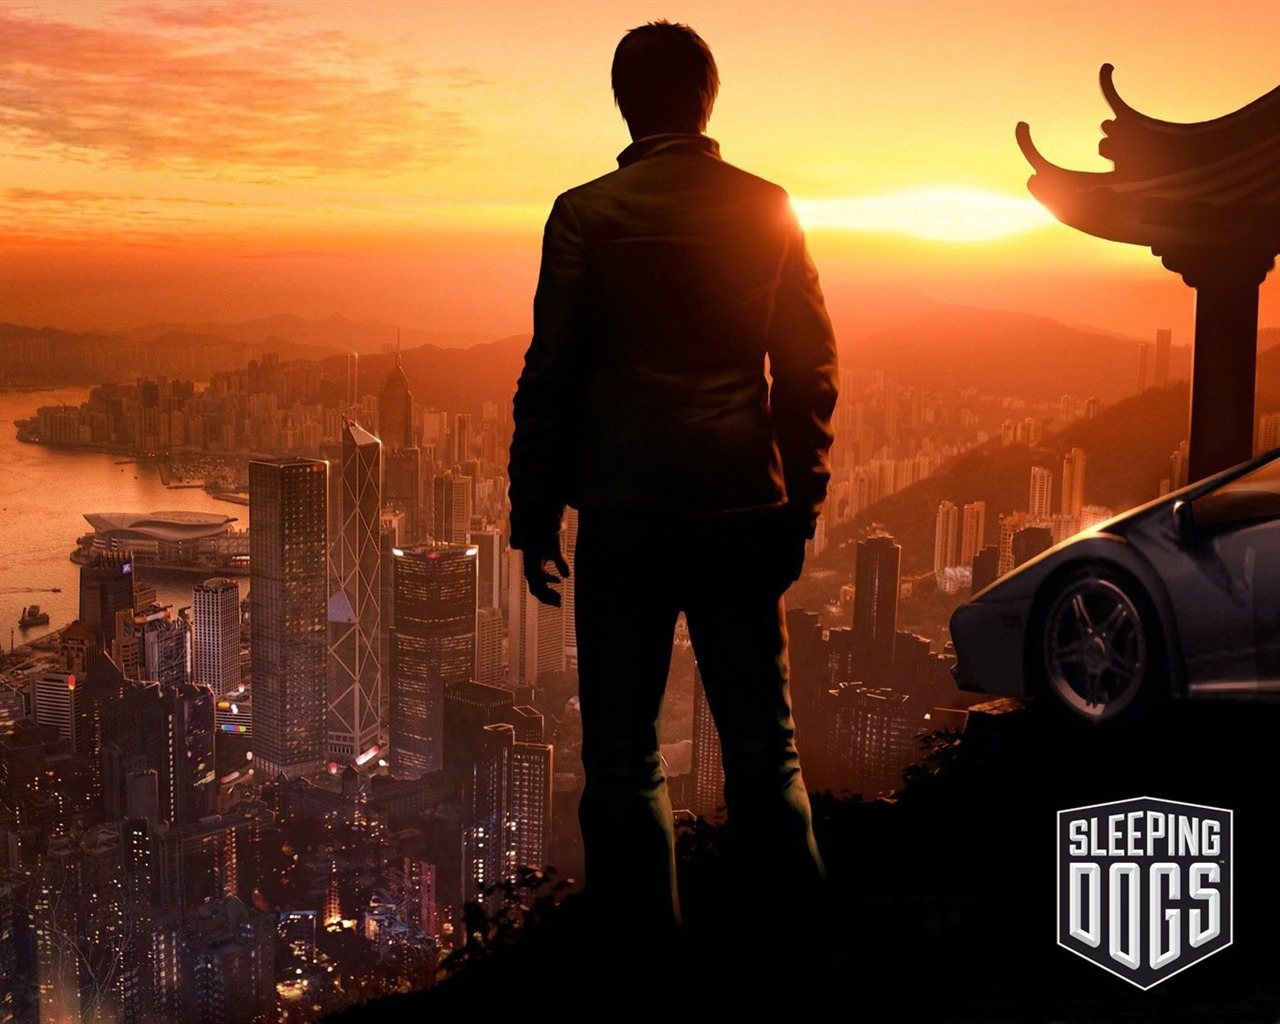 Fall Max Payne Hd Wallpapers Sleeping Dogs Game Sunset 2012 Popular Game Wallpapers